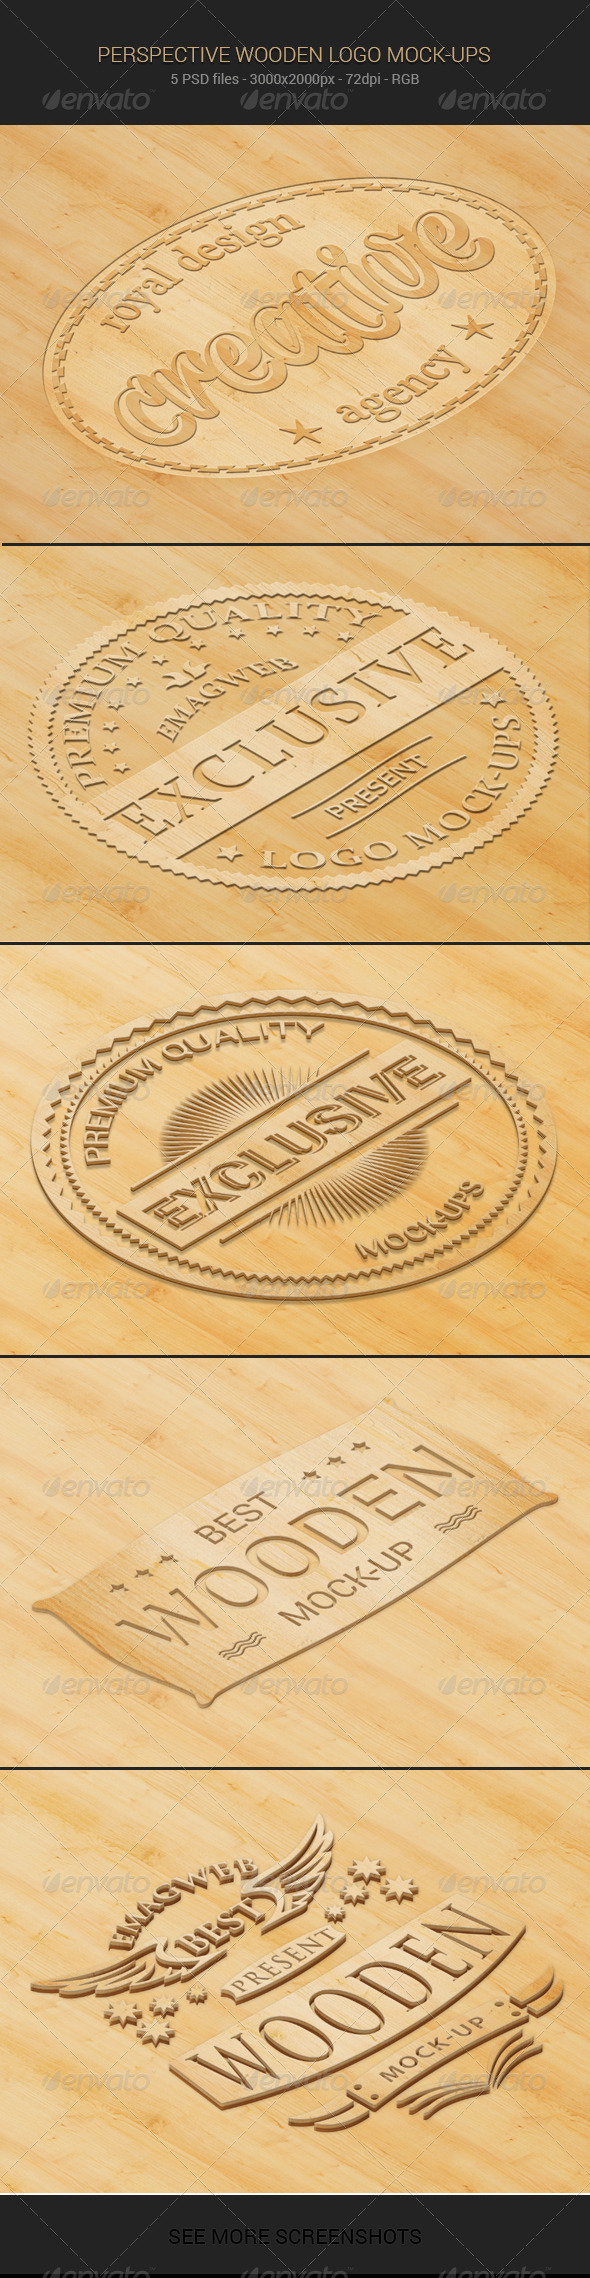 GraphicRiver Perspective Wooden Logo Mock-ups 6595034